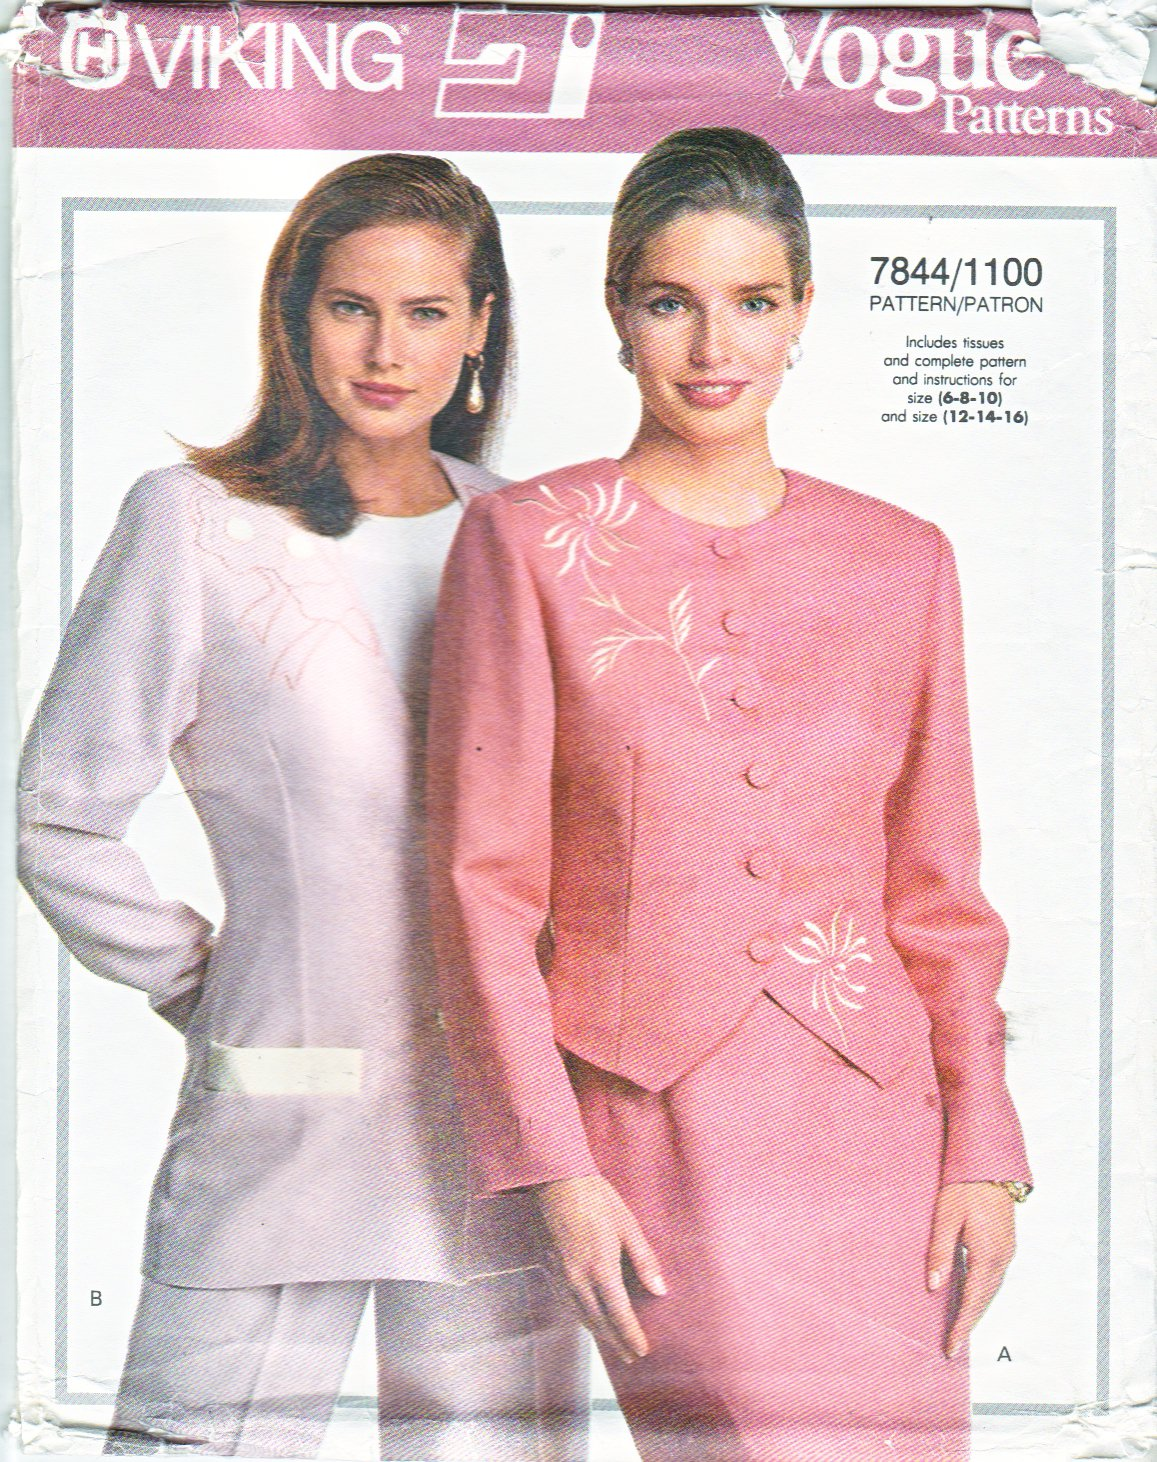 Vogue Sewing Pattern 7844 1100 Misses Size 6-16 Easy Jacket Skirt Pants Top